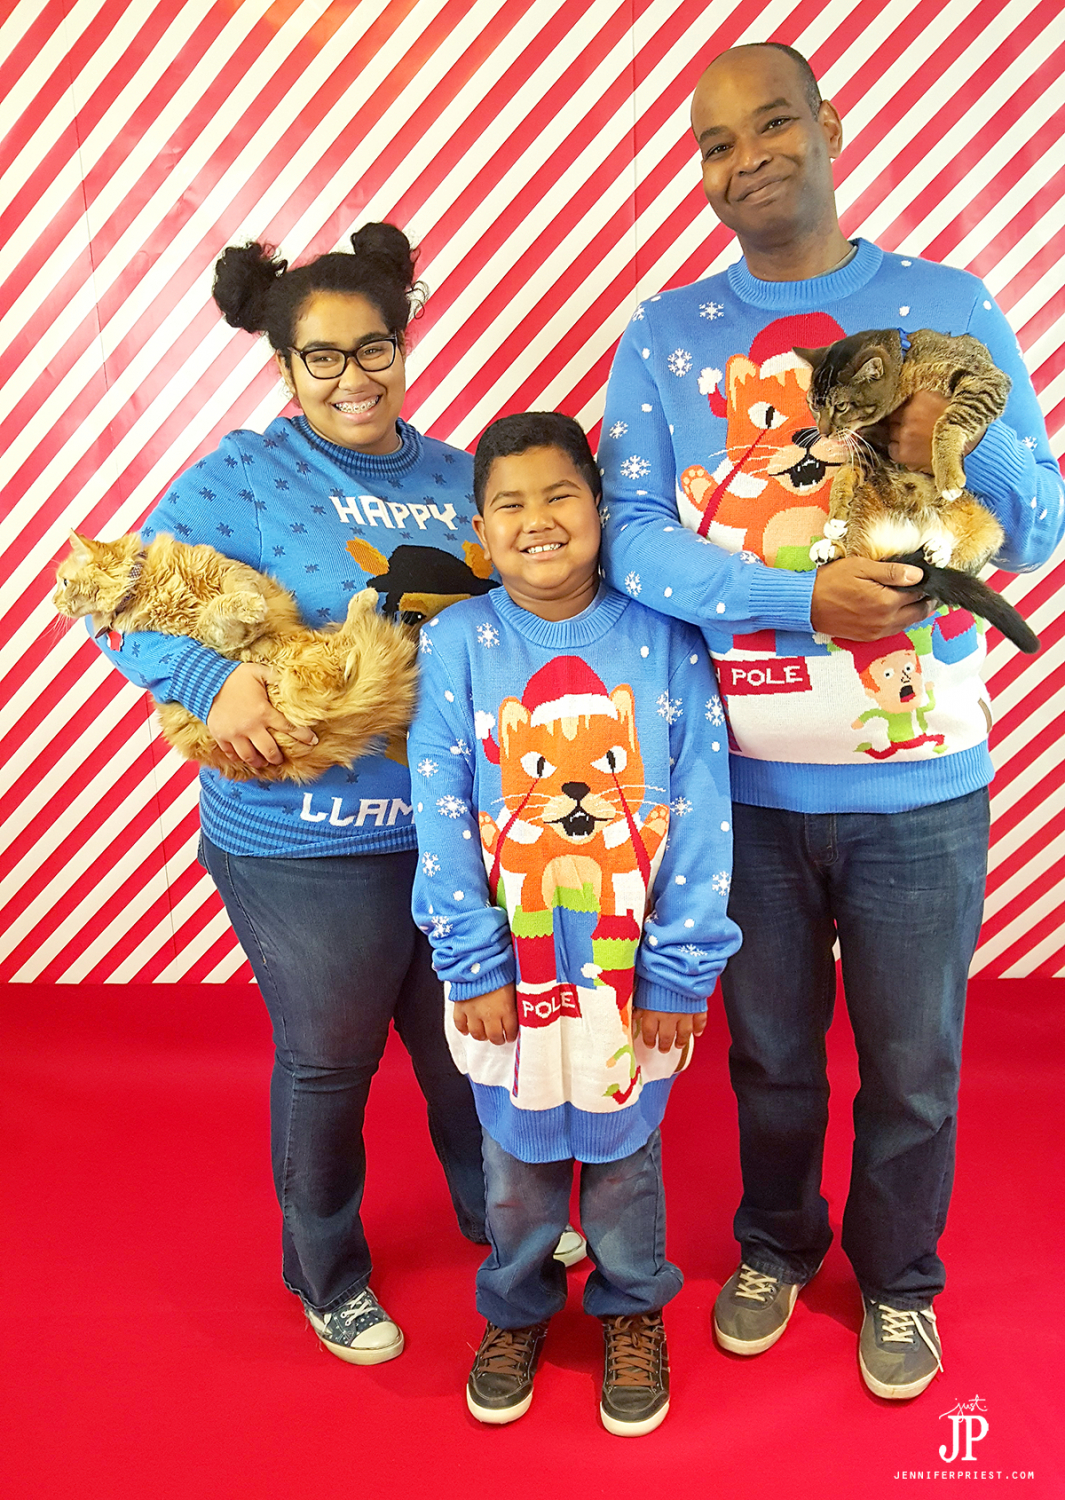 Funny Christmas Sweaters for Everyone!